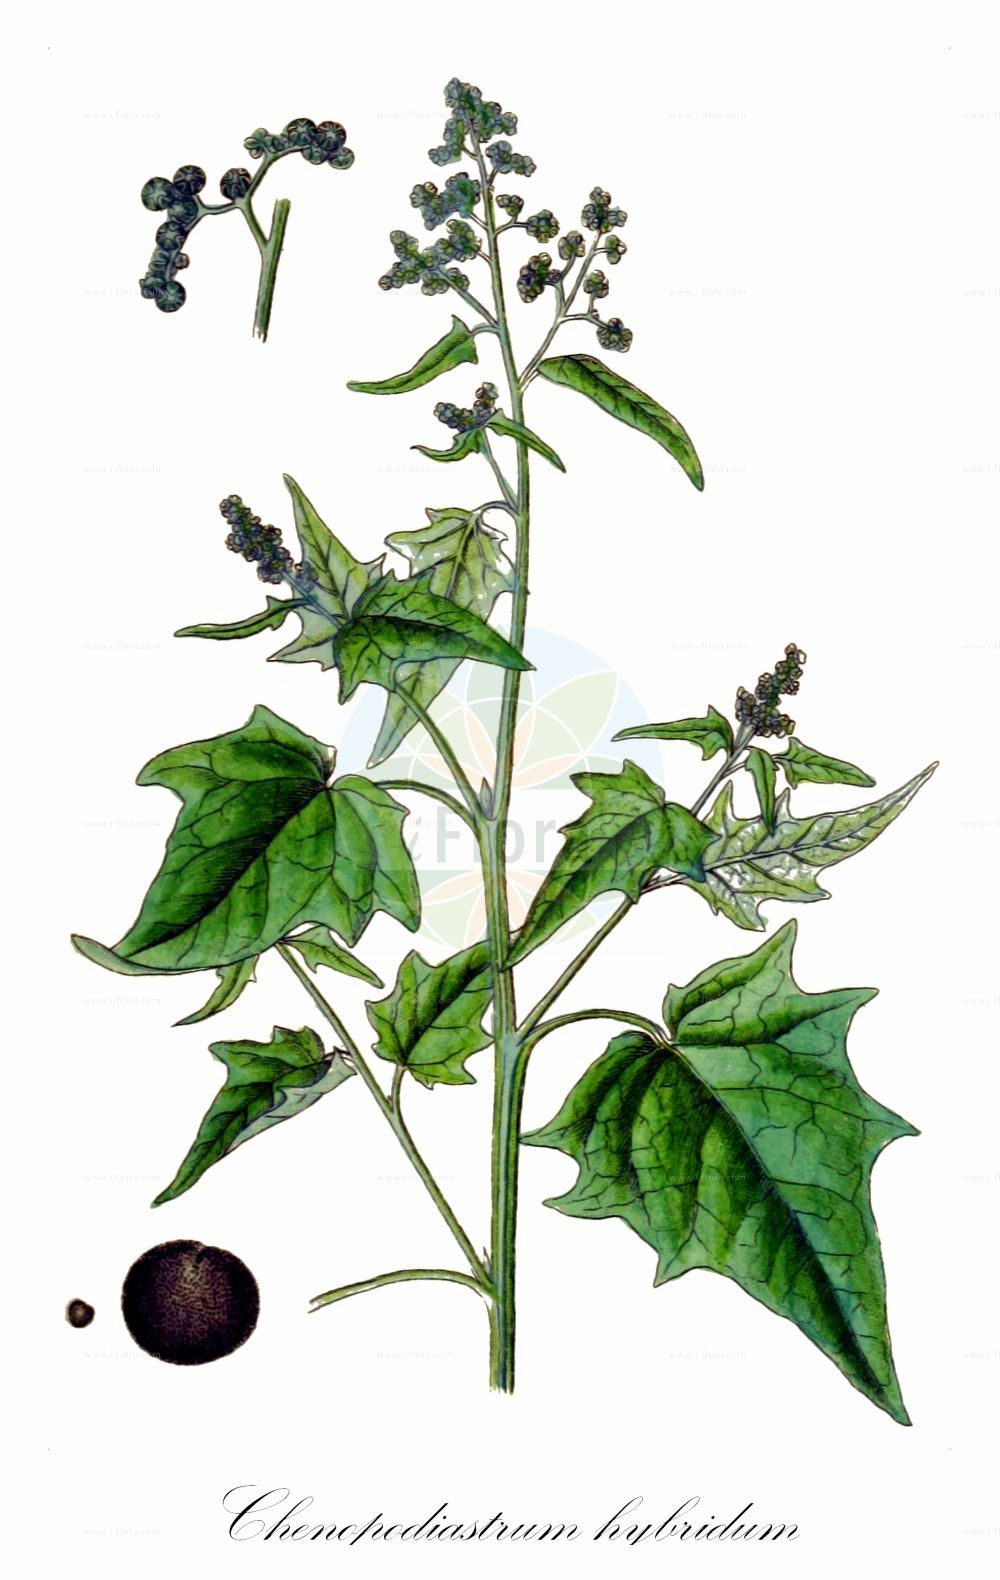 Historische Abbildung von Chenopodiastrum hybridum (Breitblaettriger Gaensefuss - Maple-leaved Goosefoot). Das Bild zeigt Blatt, Bluete, Frucht und Same. ---- Historical Drawing of Chenopodiastrum hybridum (Breitblaettriger Gaensefuss - Maple-leaved Goosefoot).The image is showing leaf, flower, fruit and seed.(Chenopodiastrum hybridum,Breitblaettriger Gaensefuss,Maple-leaved Goosefoot,Chenopodium angulosum,Chenopodium hybridum,Bastard-Gaensefuss,Sautod-Gaensefuss,Stechapfelblaettriger Gaensefuss,Bigseed Goosefoot,Maple-leaf Goosefoot,Sowbane,Chenopodiastrum,Amaranthaceae,Fuchsschwanzgewaechse,Pigweed family,Blatt,Bluete,Frucht,Same,leaf,flower,fruit,seed,Sturm (1796f))